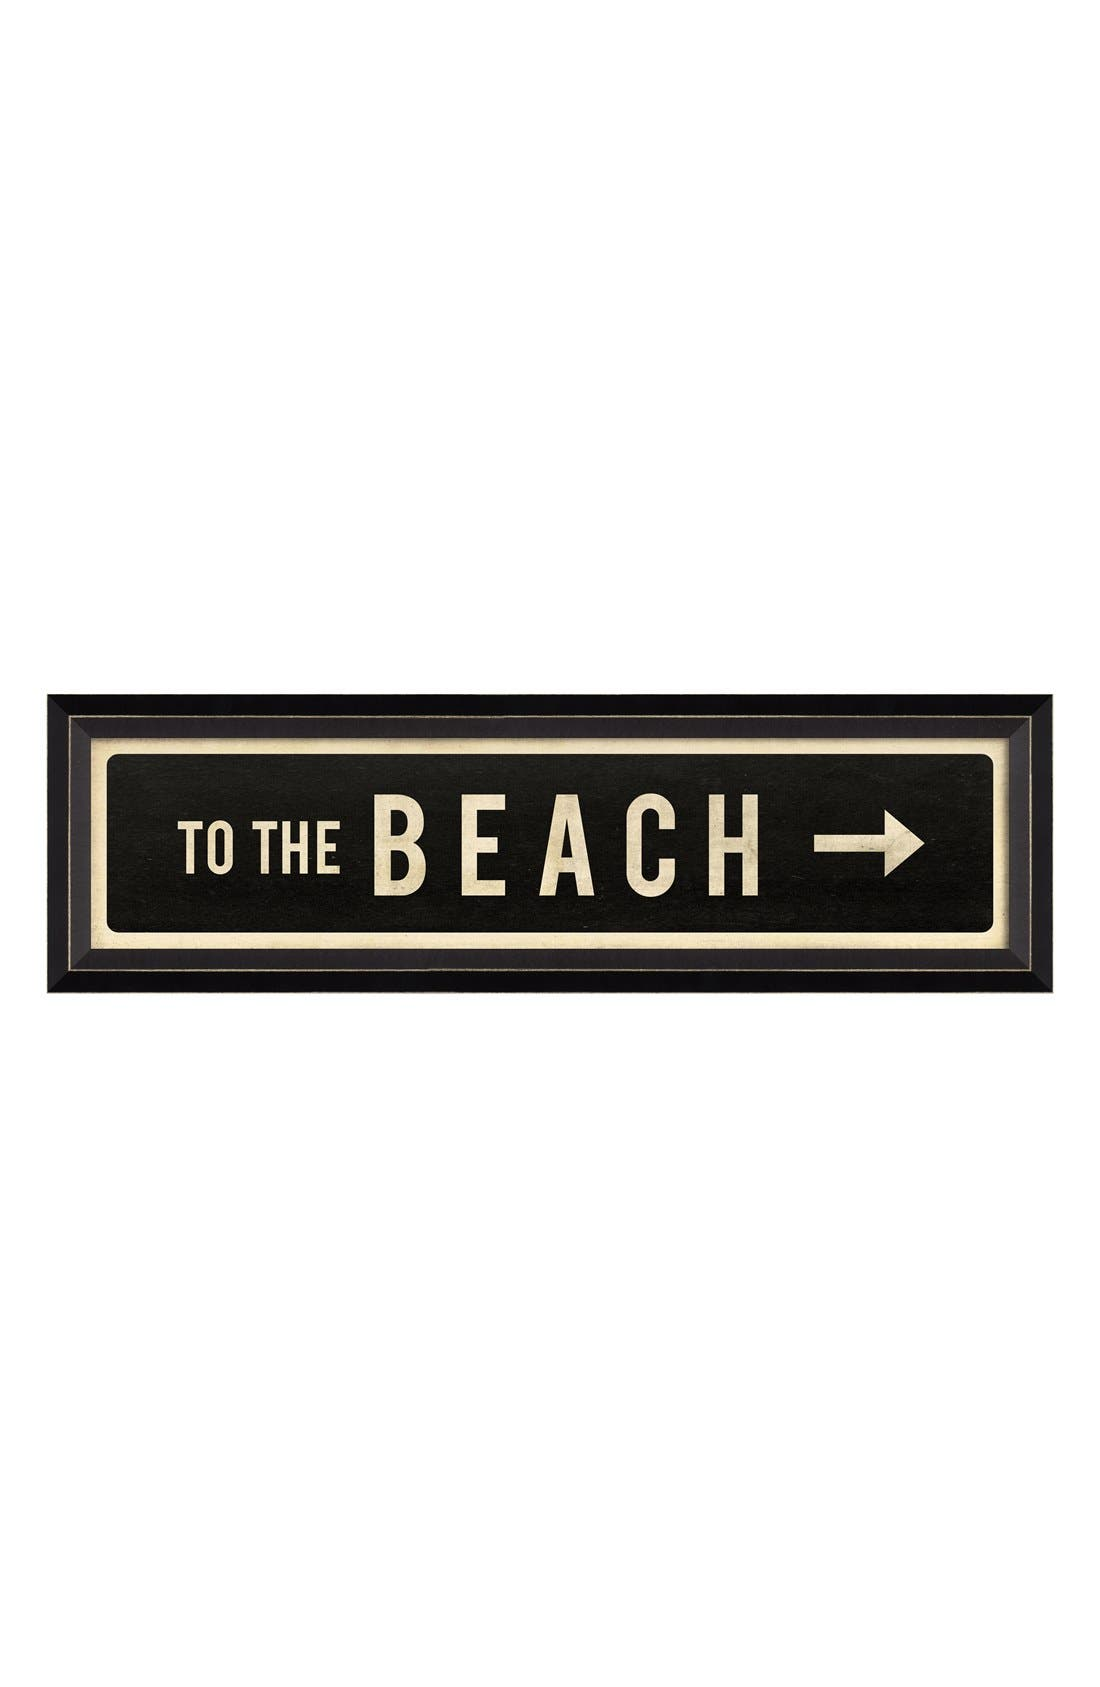 Main Image - Spicher and Company 'To the Beach' Vintage Look Sign Artwork